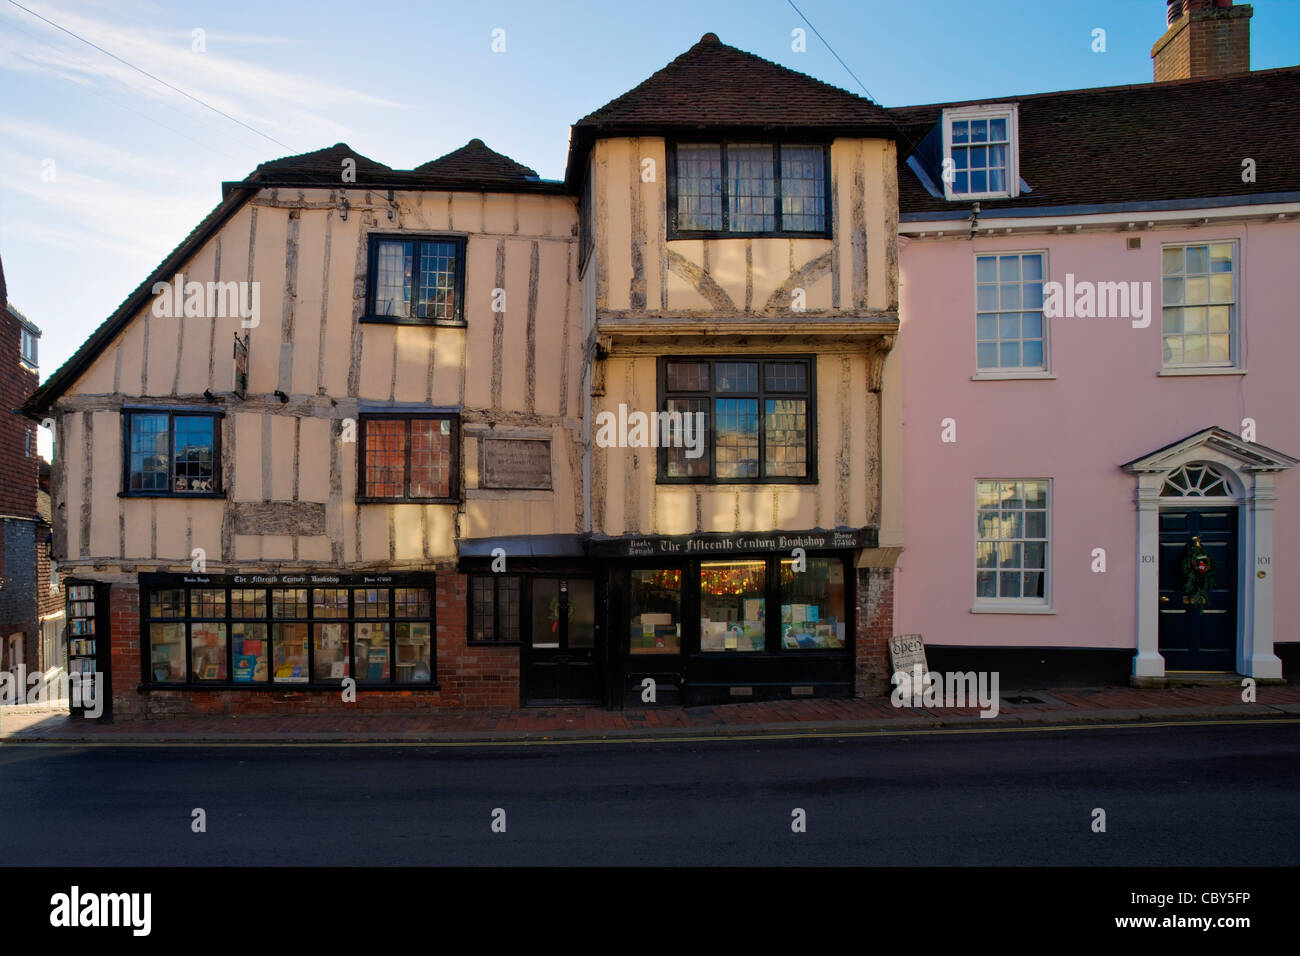 The Fifteenth Century Bookshop, High Street, Lewes, Sussex, England, - Stock Image